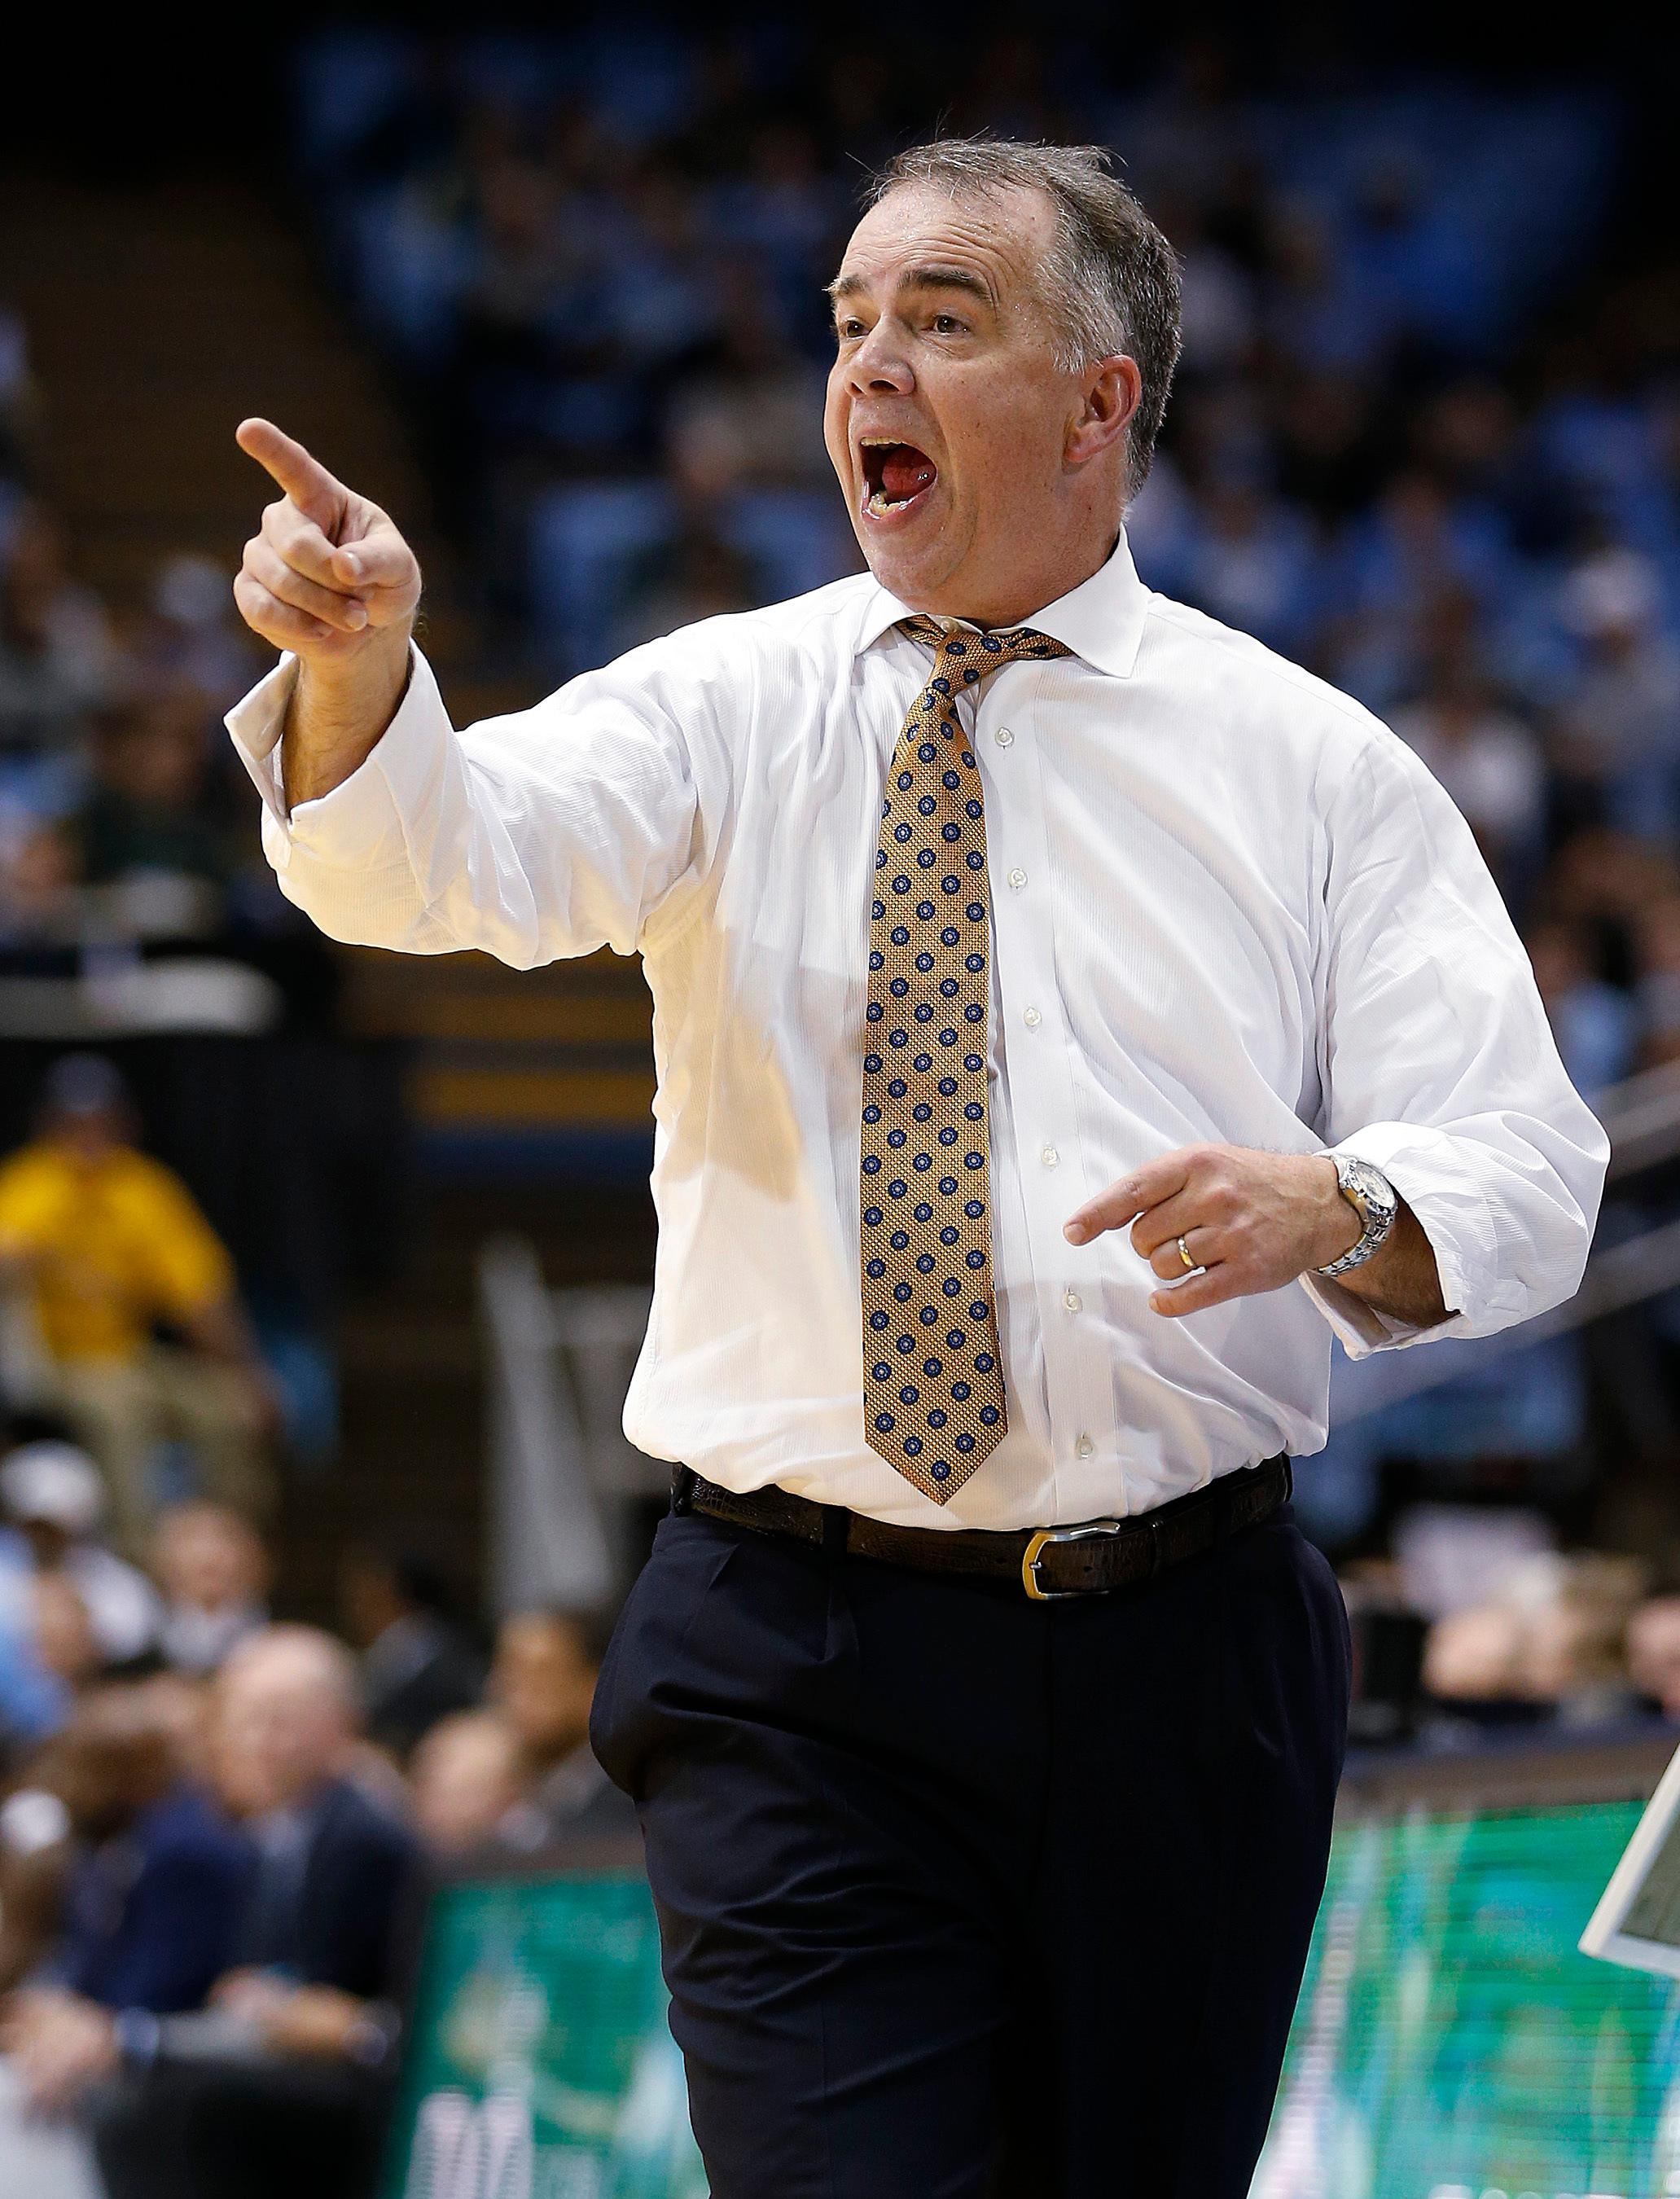 Wofford coach Mike Young gestures during the second half of the team's NCAA college basketball game against North Carolina in Chapel Hill, N.C., Wednesday, Dec. 20, 2017. Wofford upset North Carolina, 79-75. (AP Photo/Ellen Ozier)